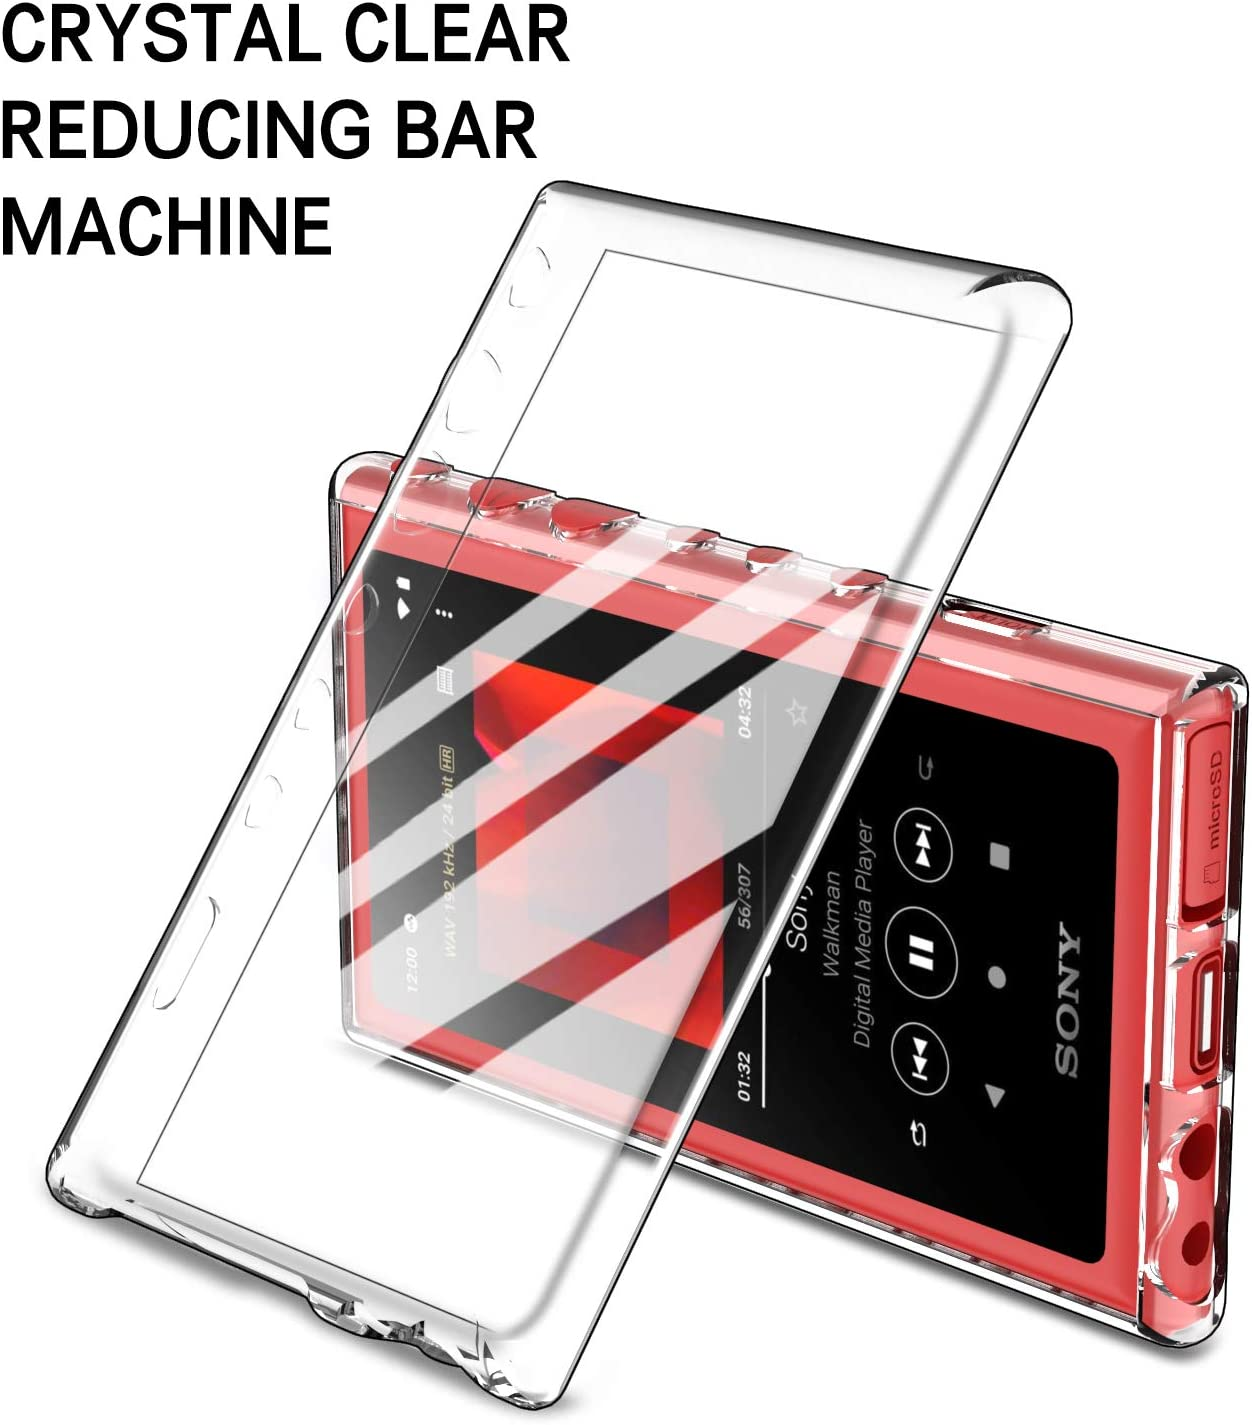 Clear IVSO TPU Coque Etui Housse pour Sony NW-A105 Walkman MP3 Player//NW-A100TPS Hi-Res Walkman